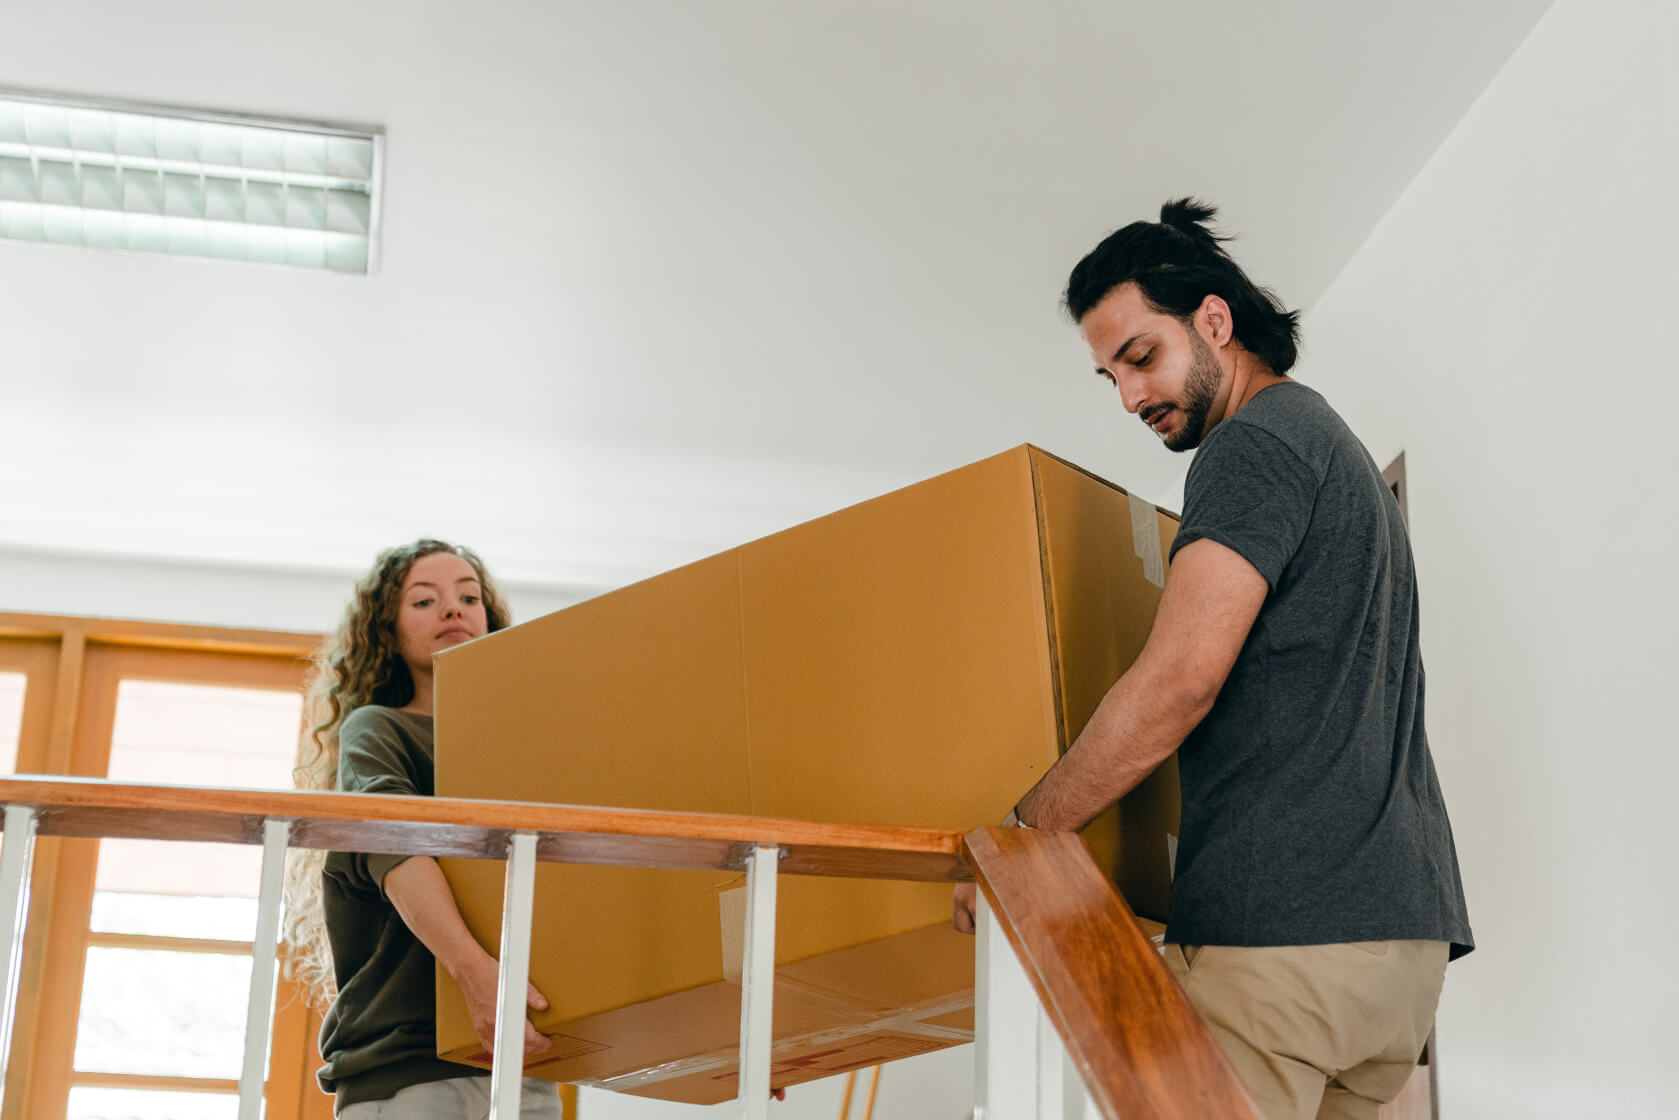 Volunteer helping move furniture